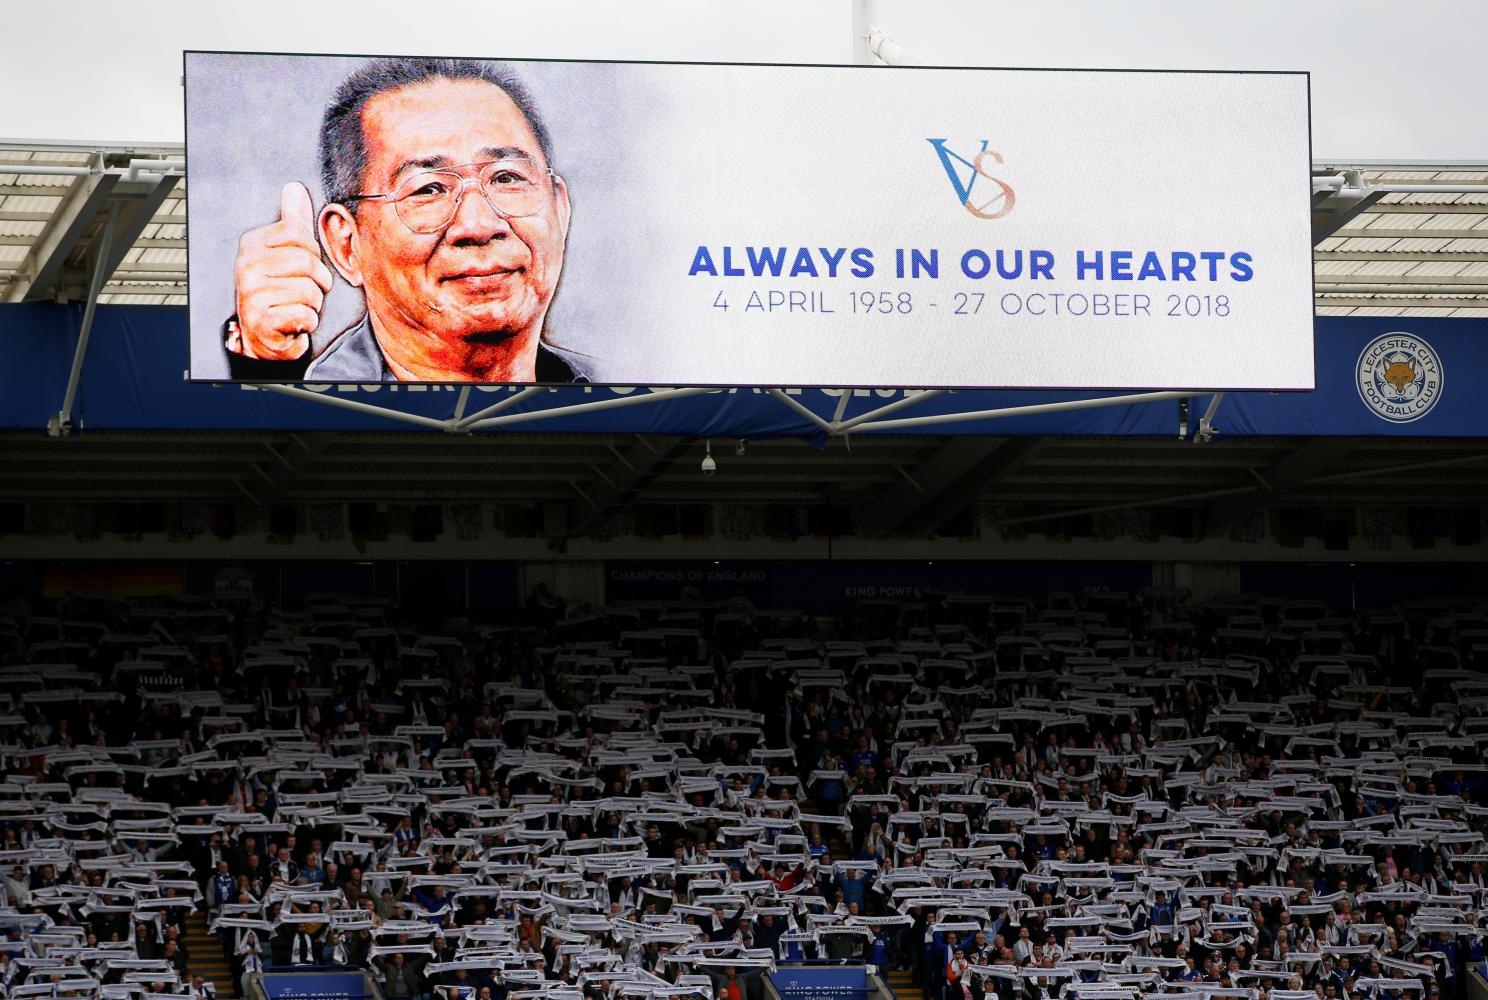 Fans pay their respects to mark the first anniversary of a helicopter crash which claimed five lives including club chairman Vichai Srivaddhana­prabha. reuters